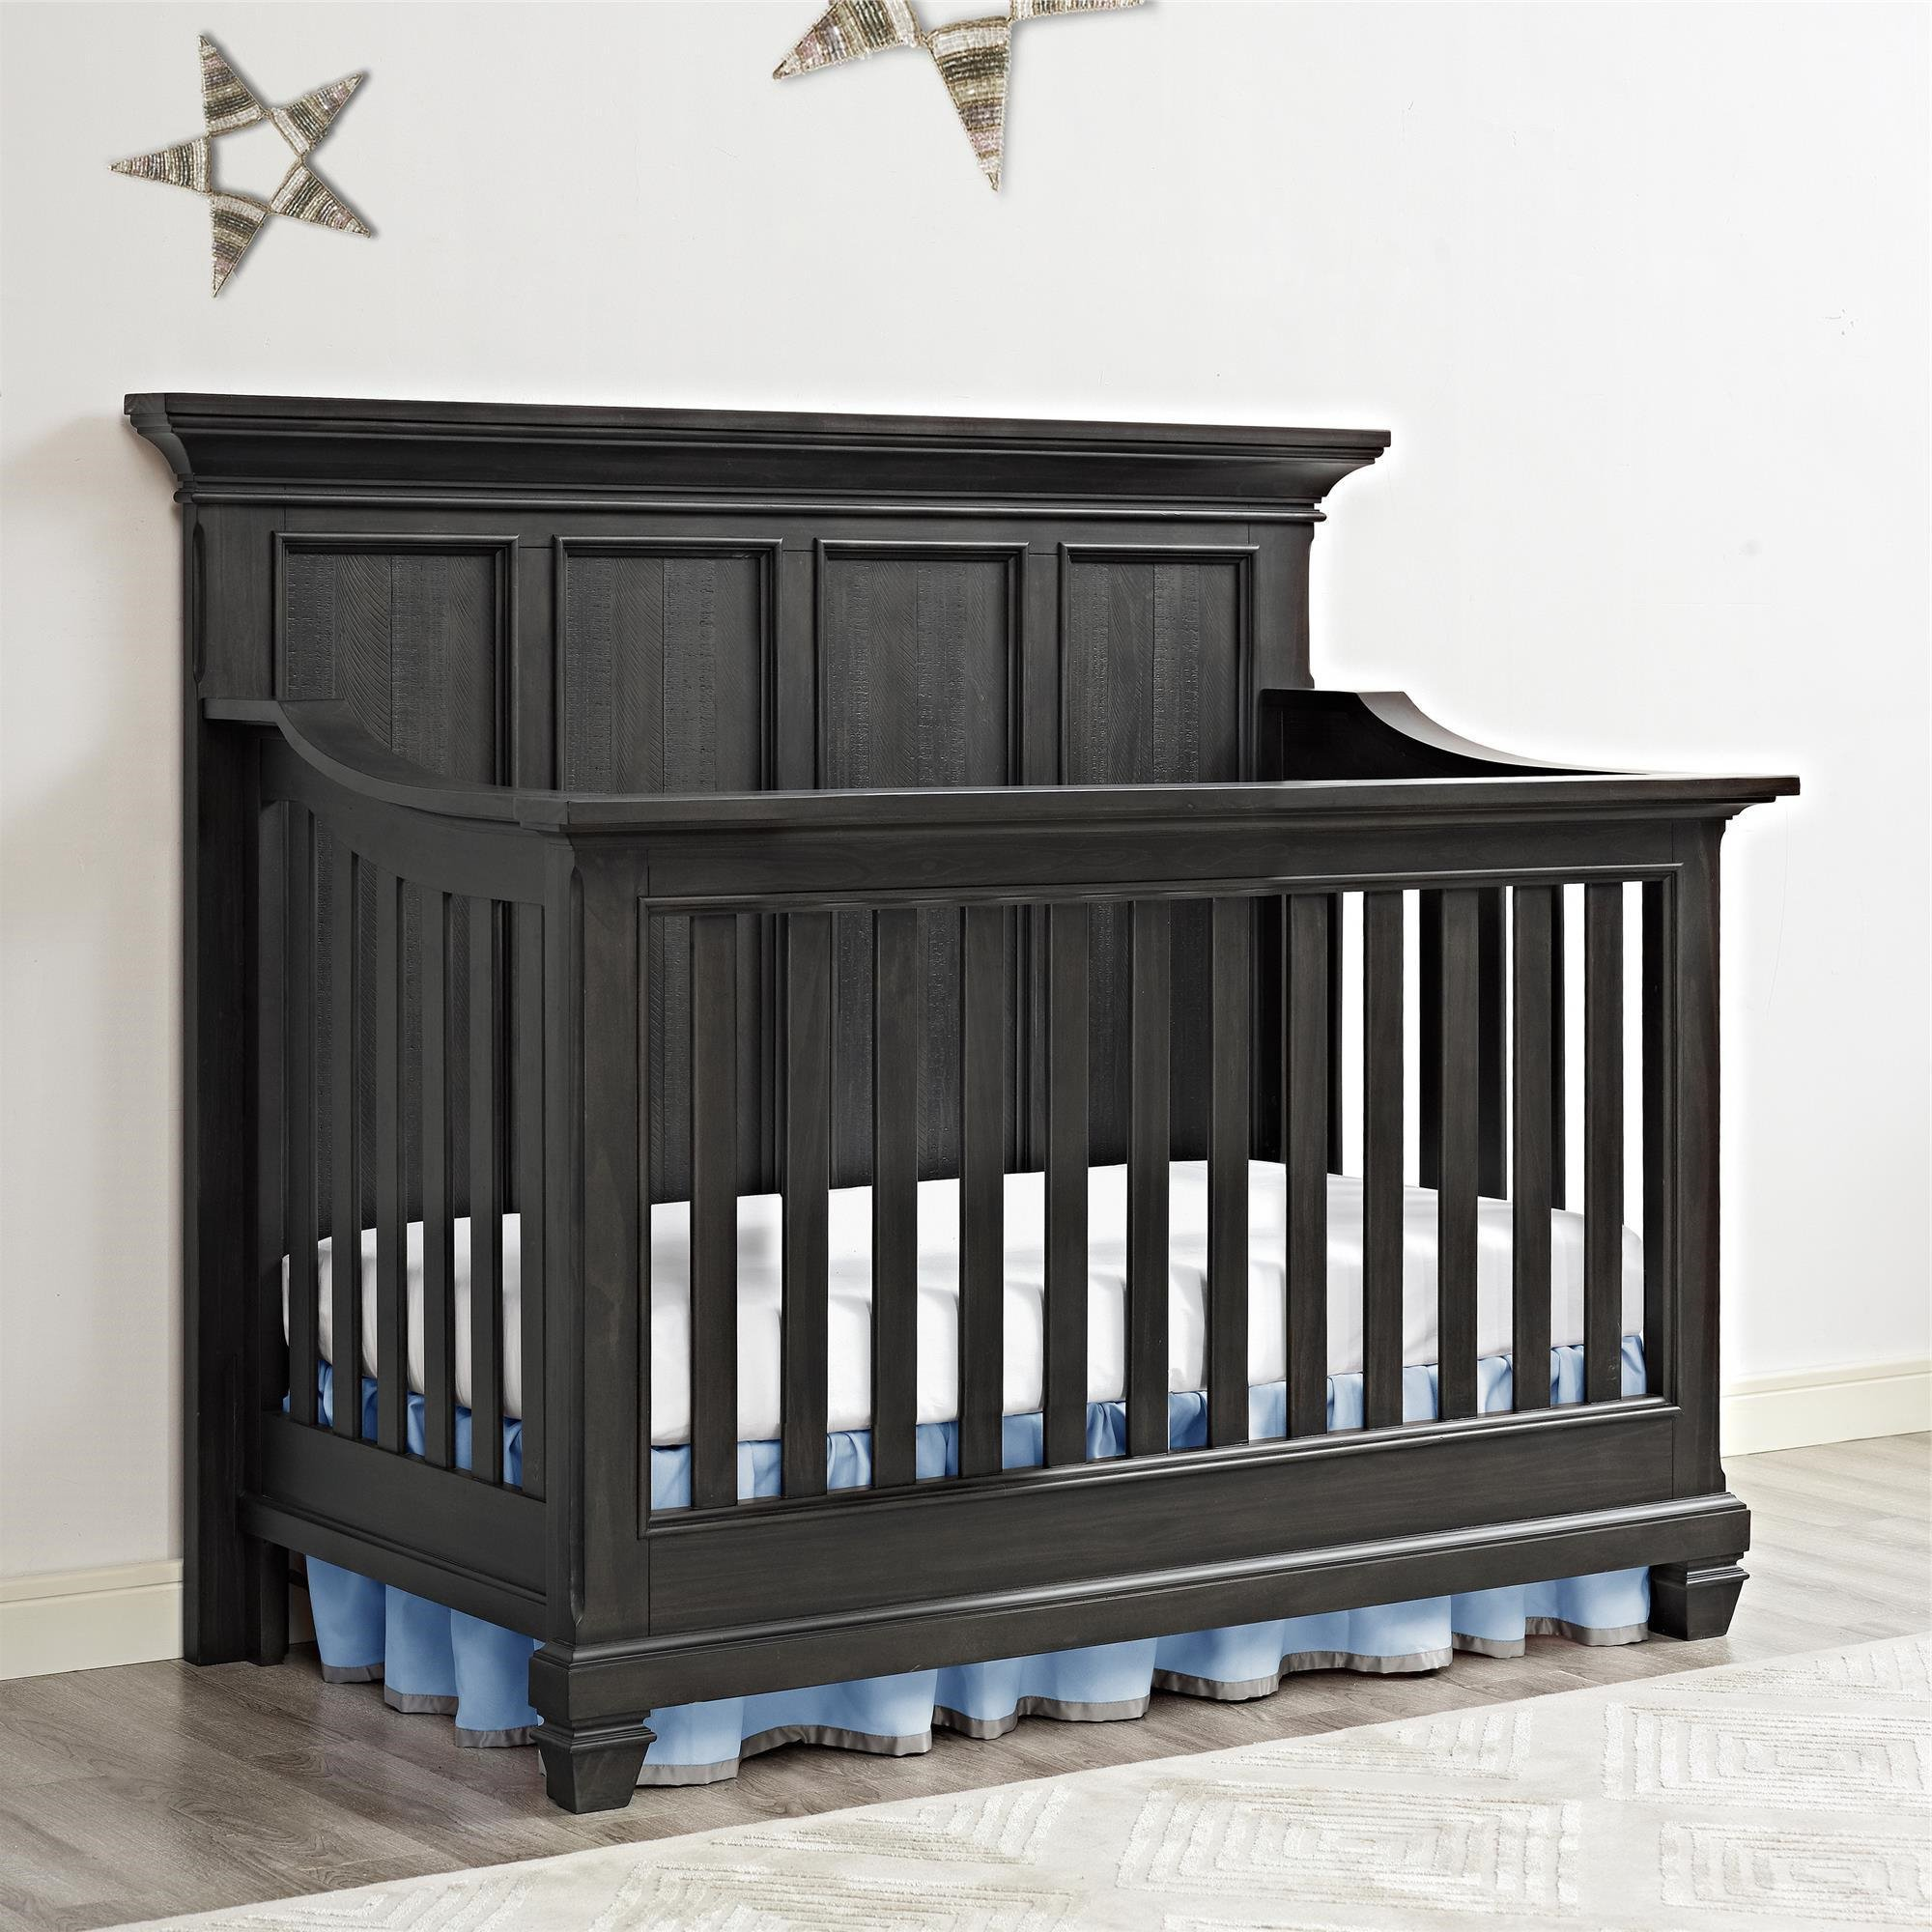 Full Size Conversion Kit Bed Rails for Bertini Baby Cribs (Weathered Charcoal) by CC KITS (Image #4)